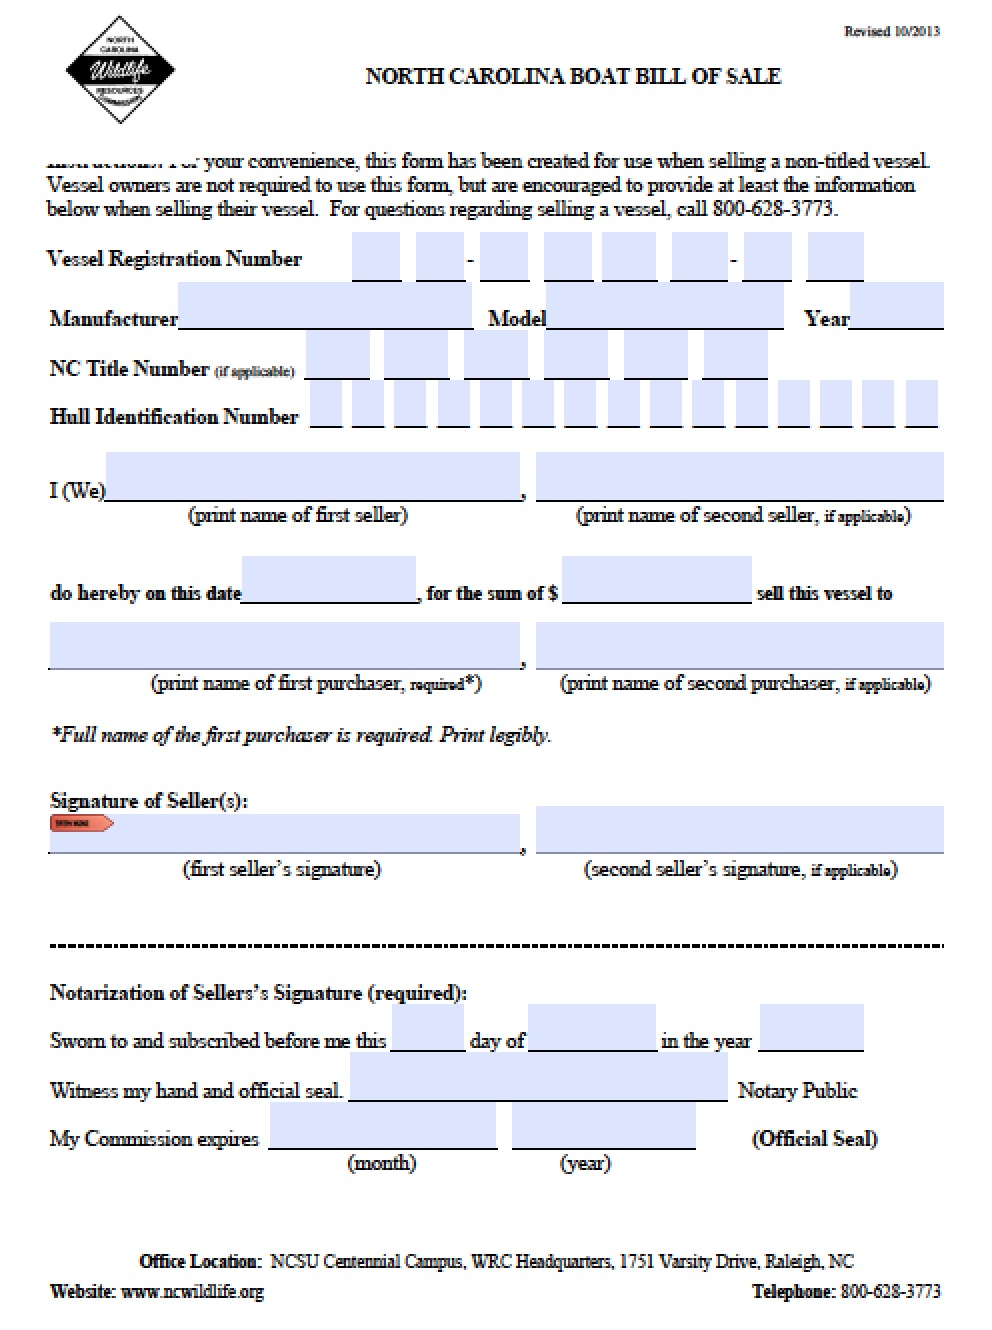 nc bill of sale Free North Carolina Boat Bill of Sale Form | PDF | Word (.doc)